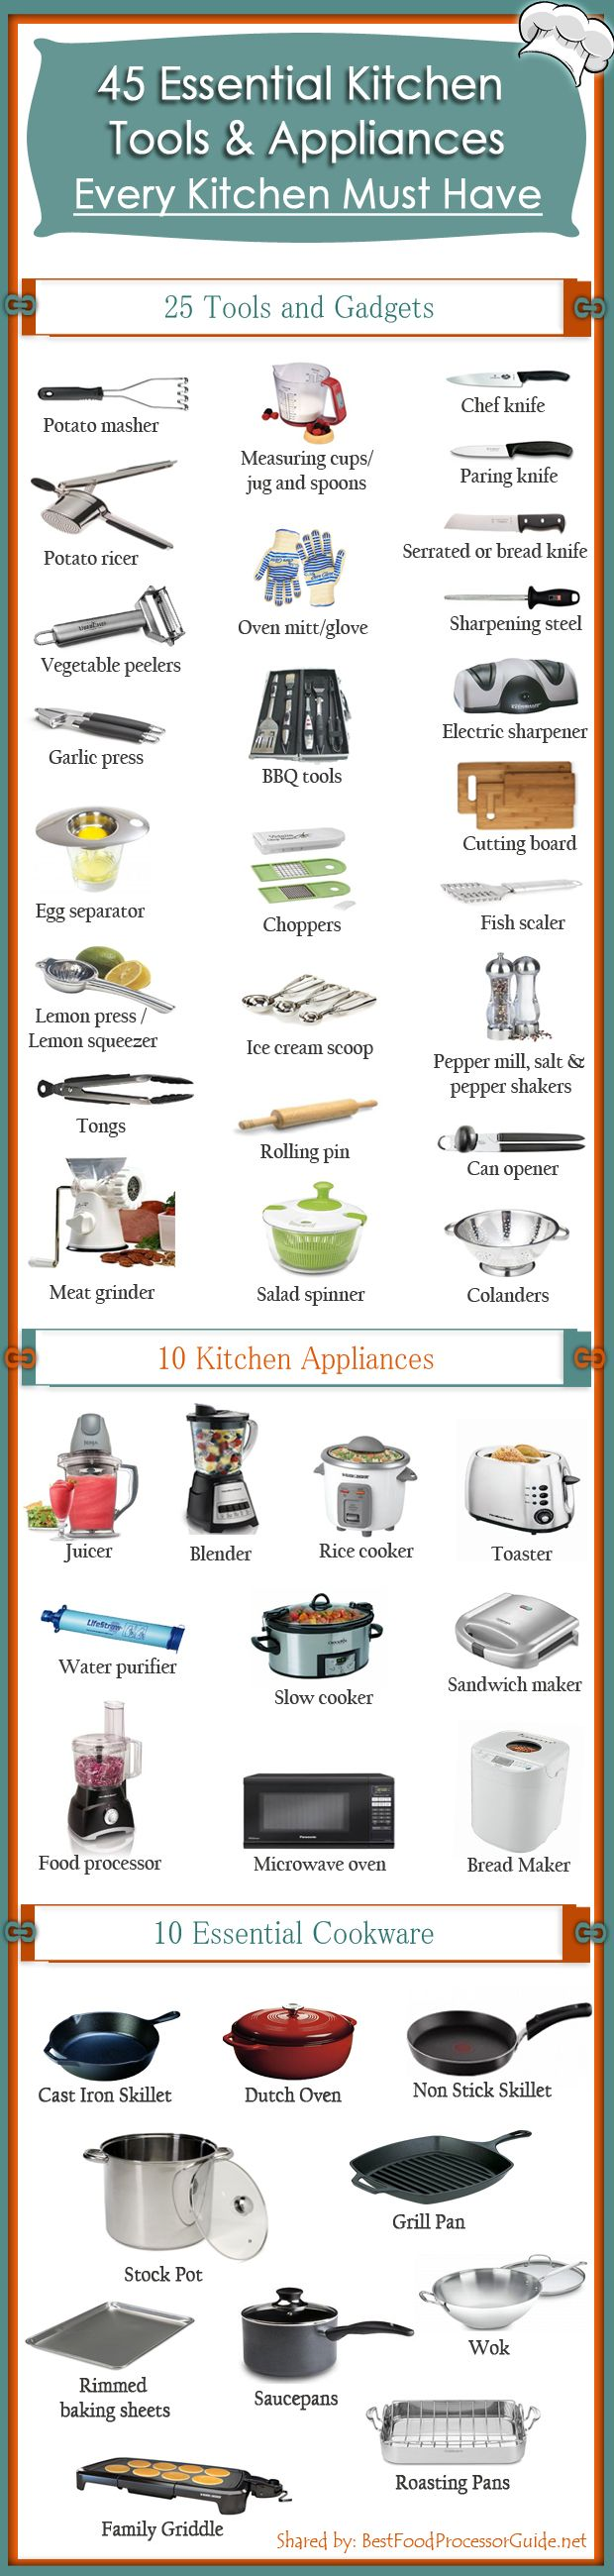 45 essential kitchen tools and appliances every kitchen must have designed by bdhirecom - Kitchen Tools List